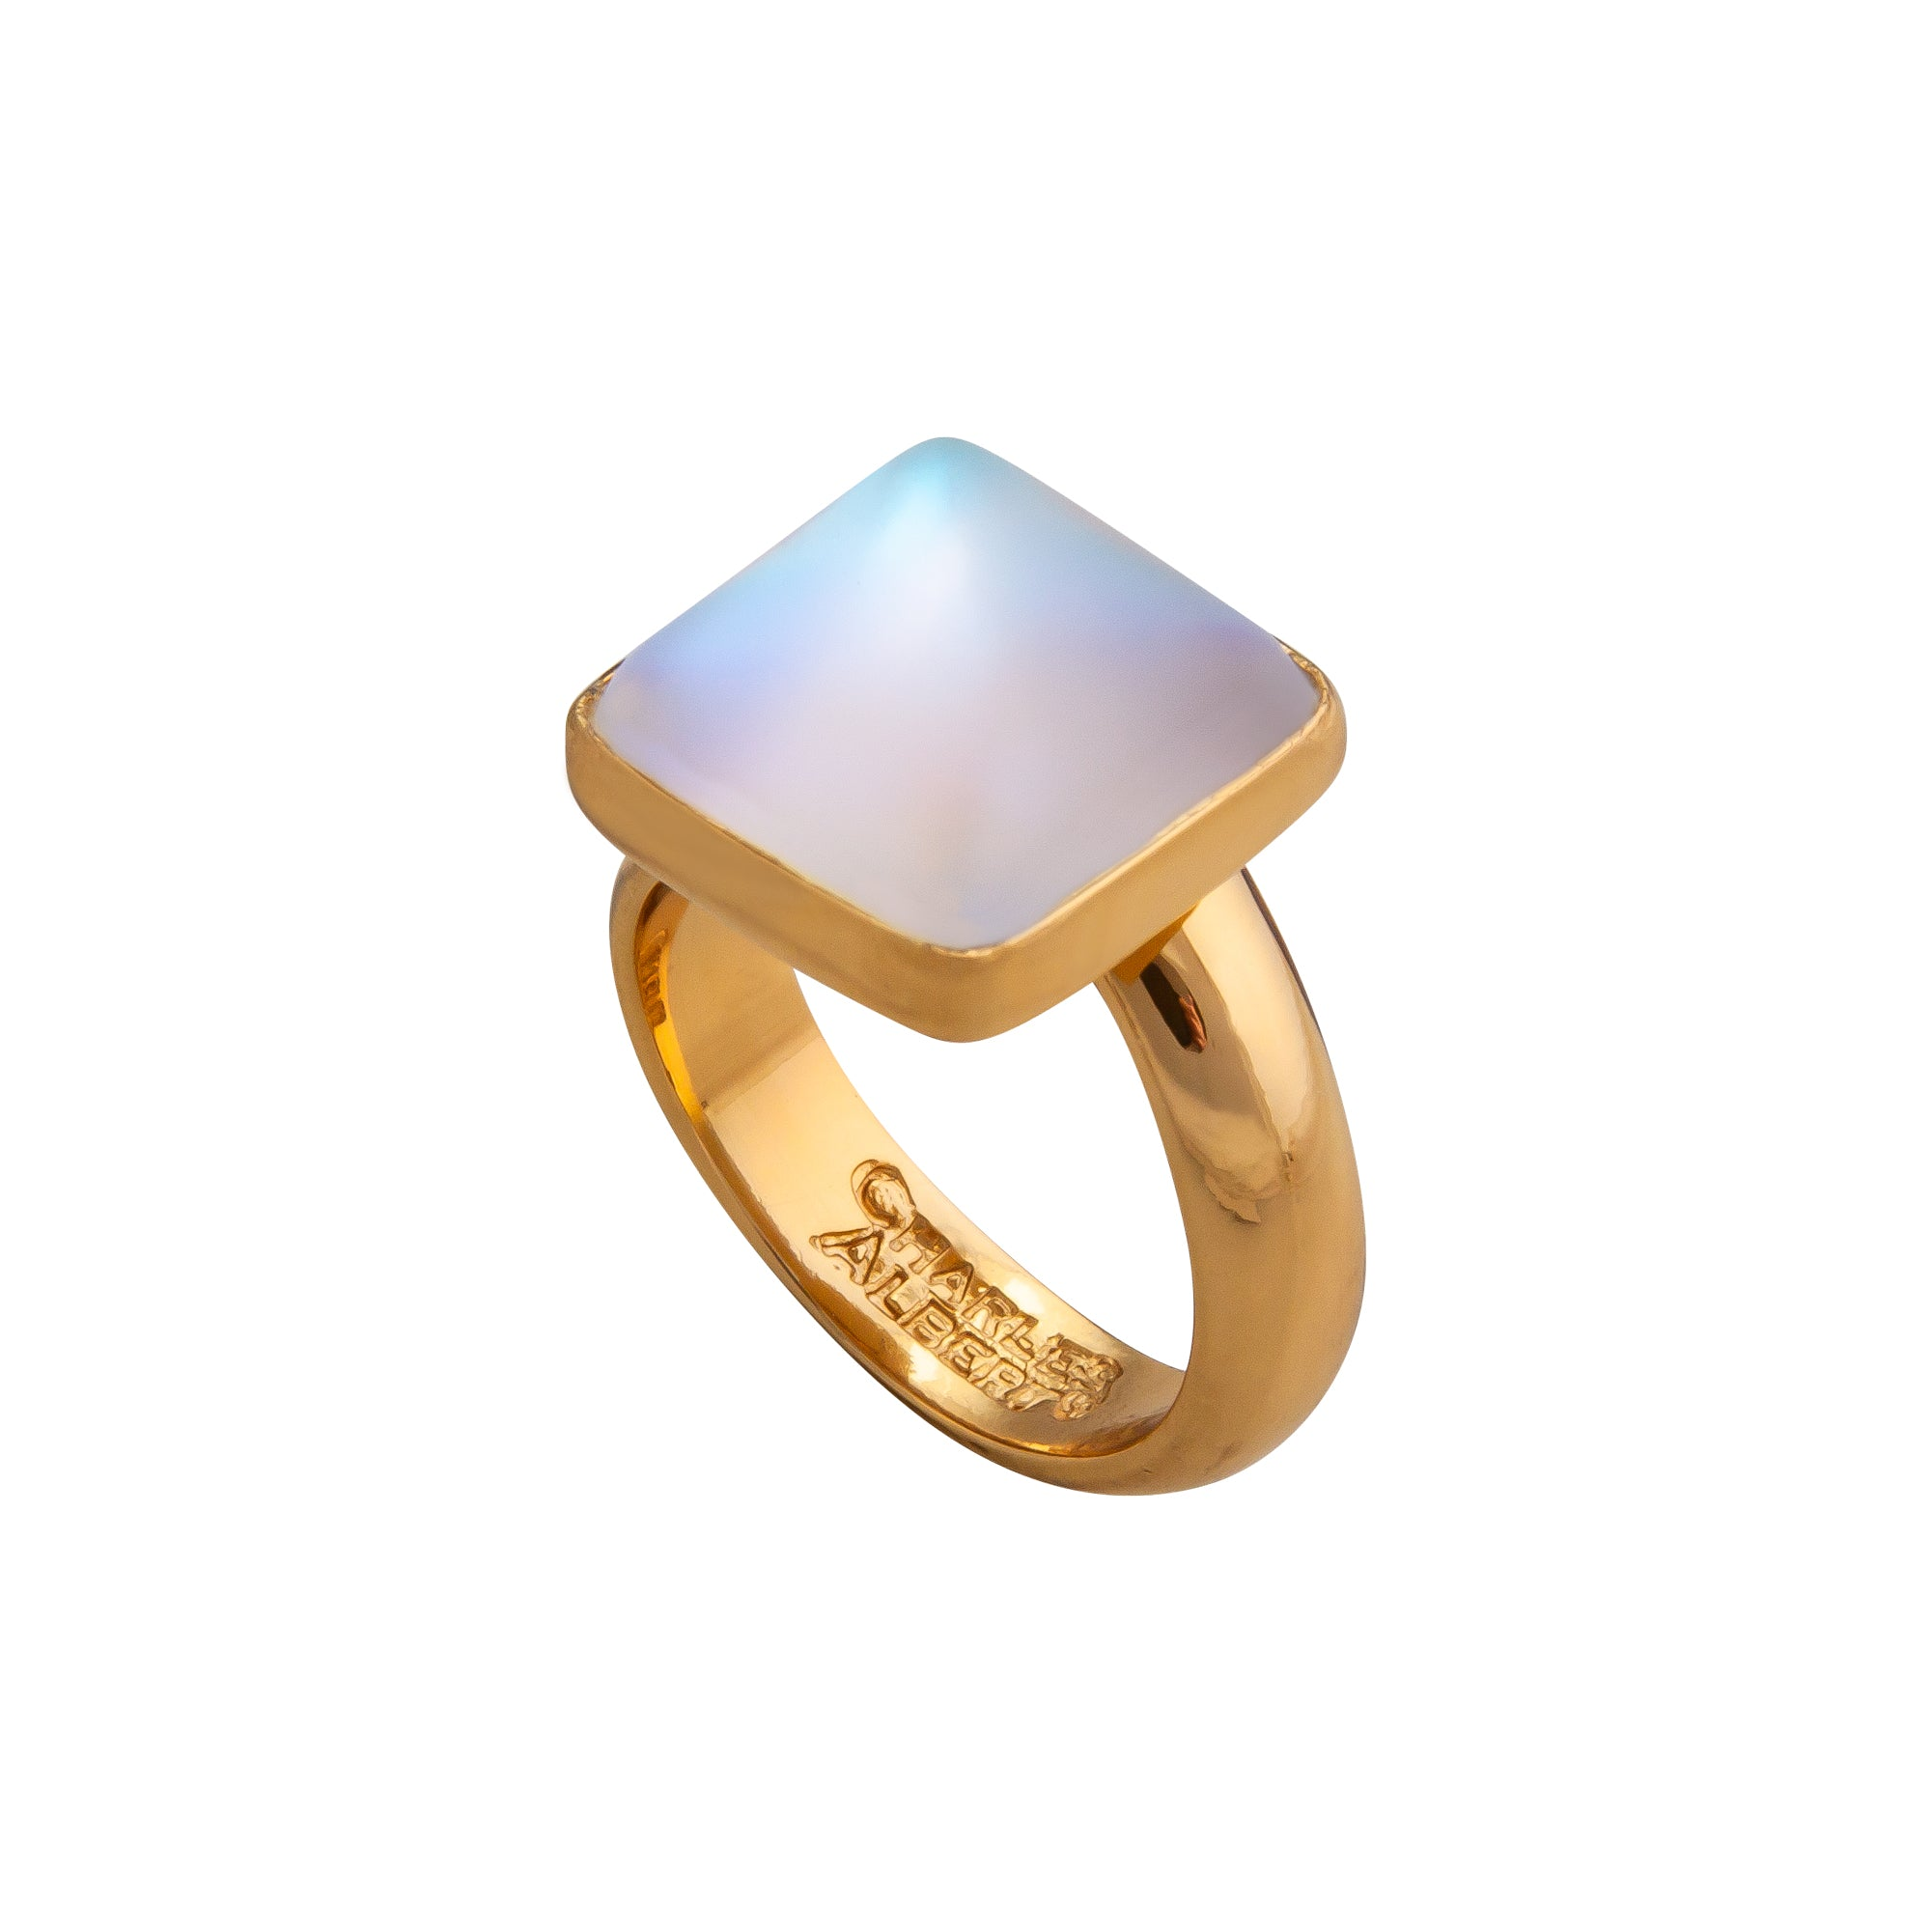 Alchemia Square Luminite Adjustable Ring